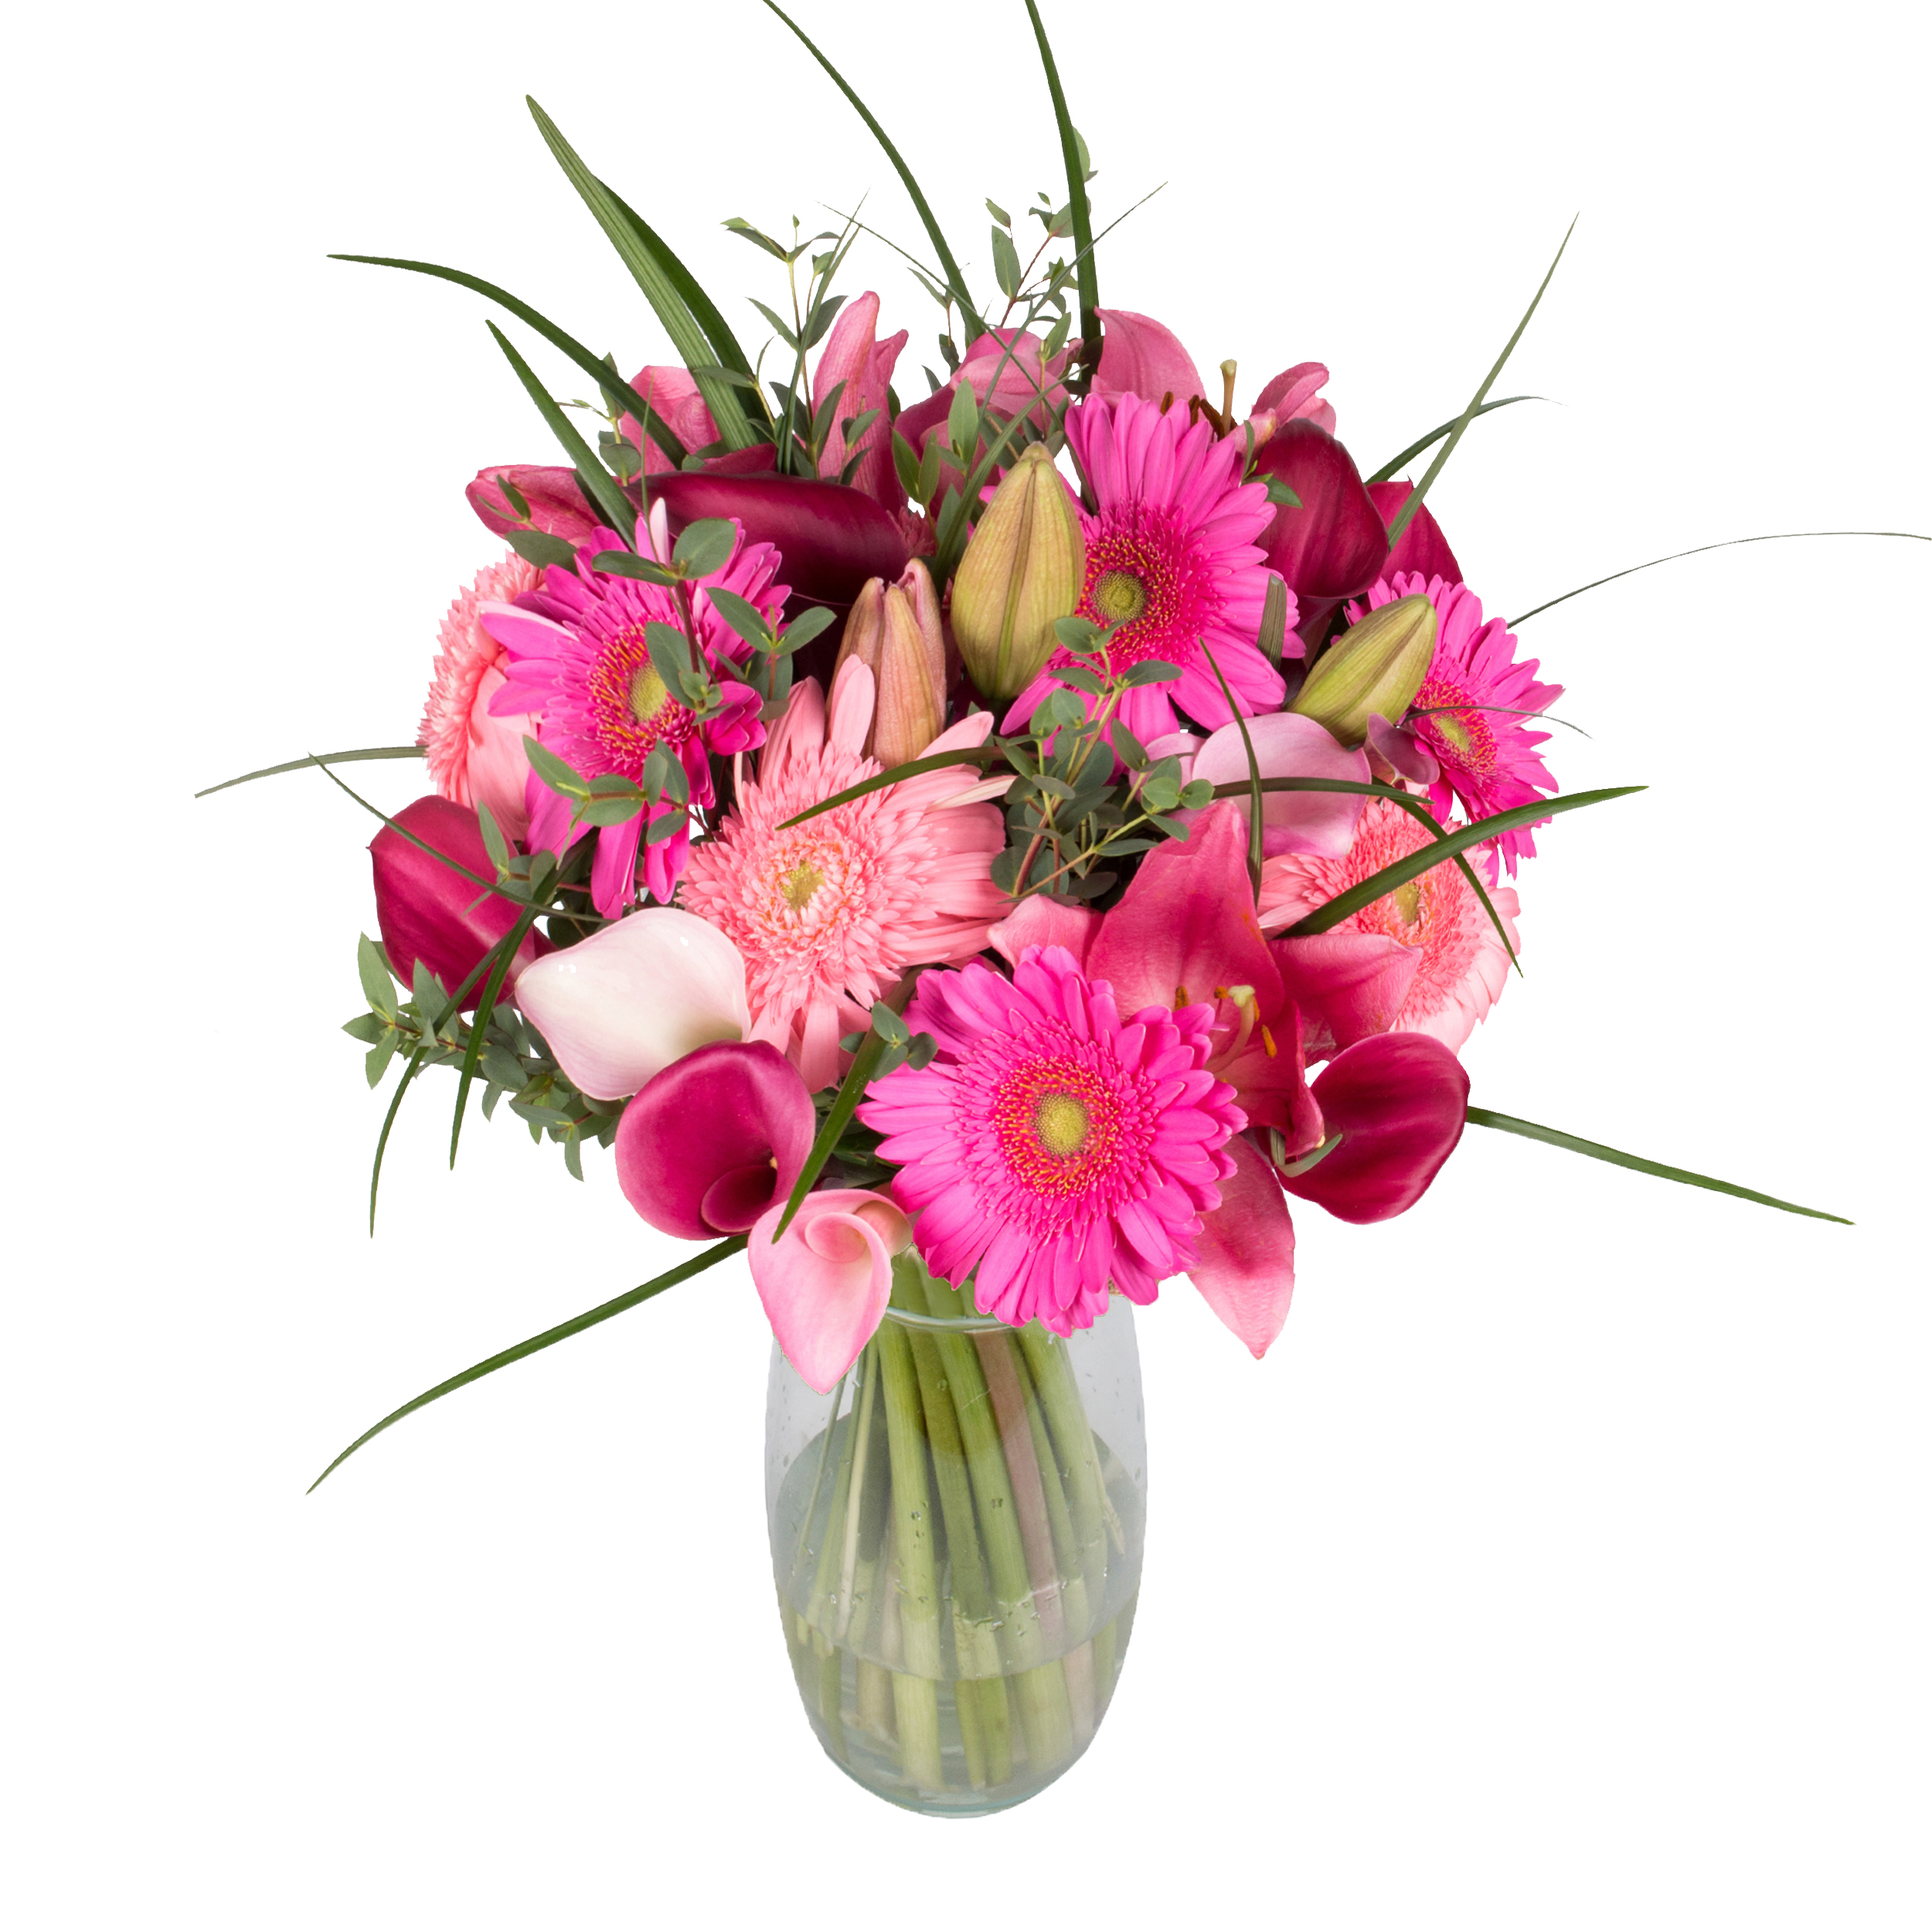 Pink Emma Bouquet - 33 Stems